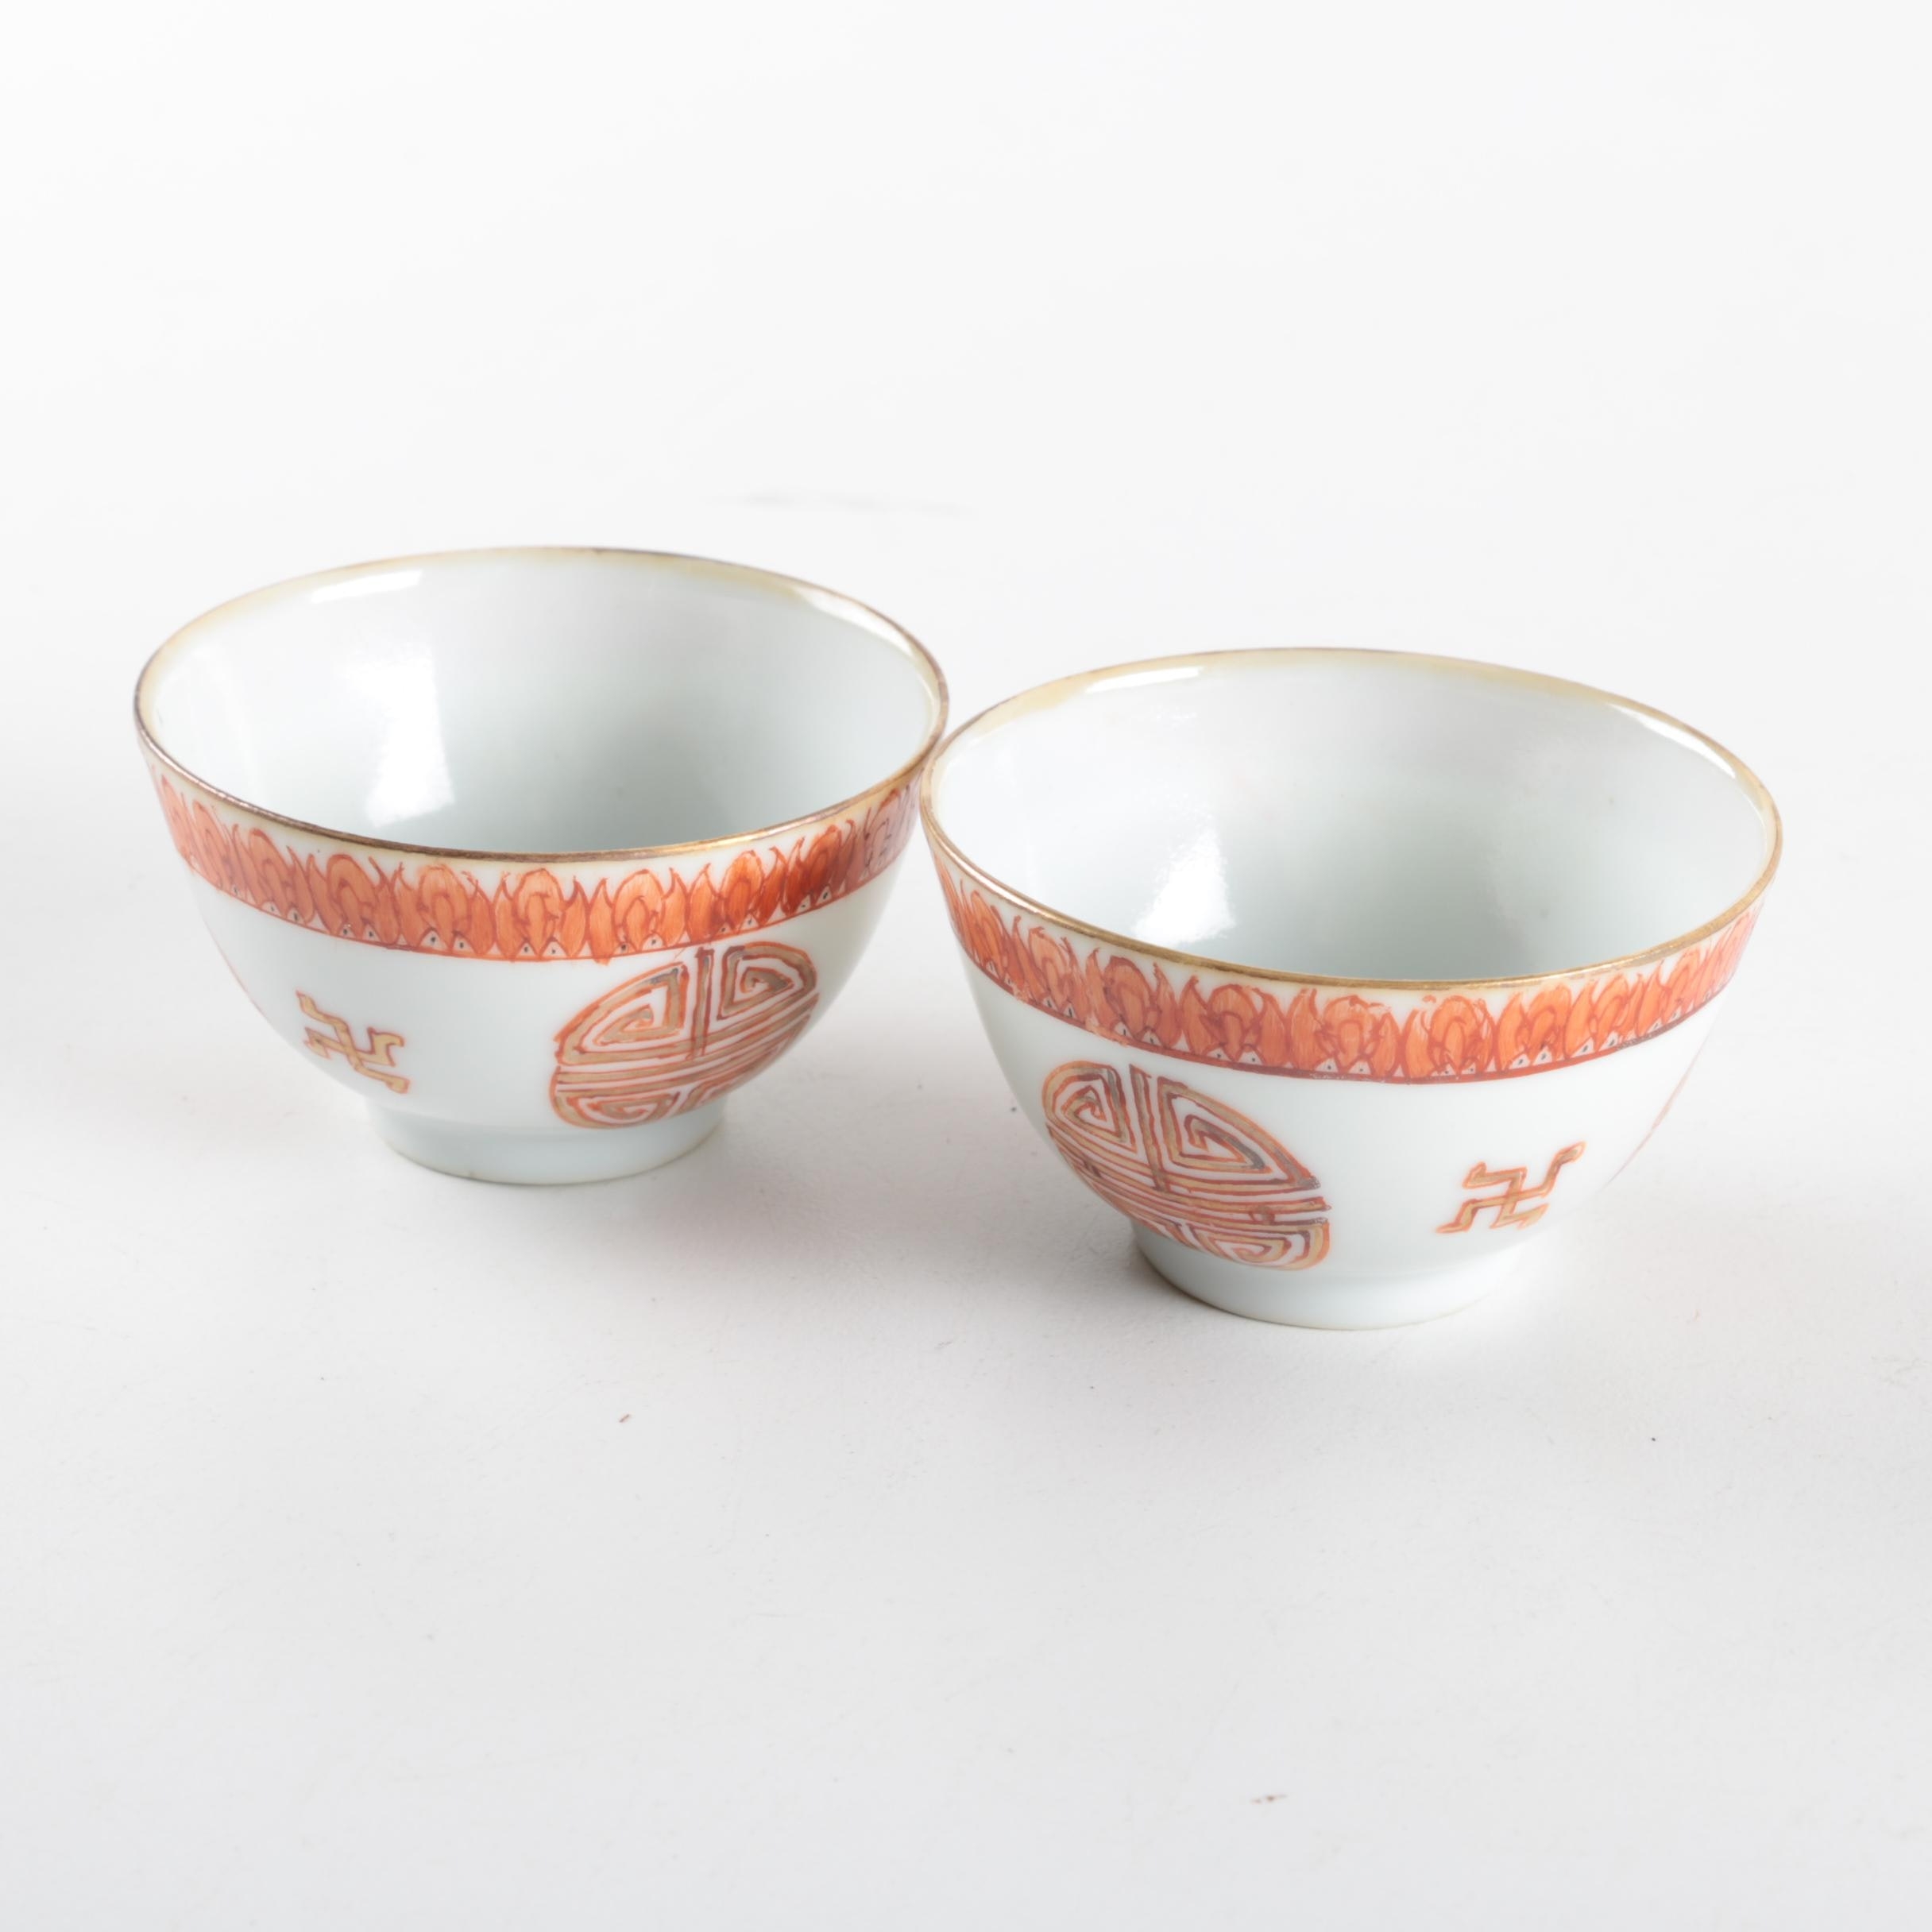 Two Porcelain Chinese Bowls